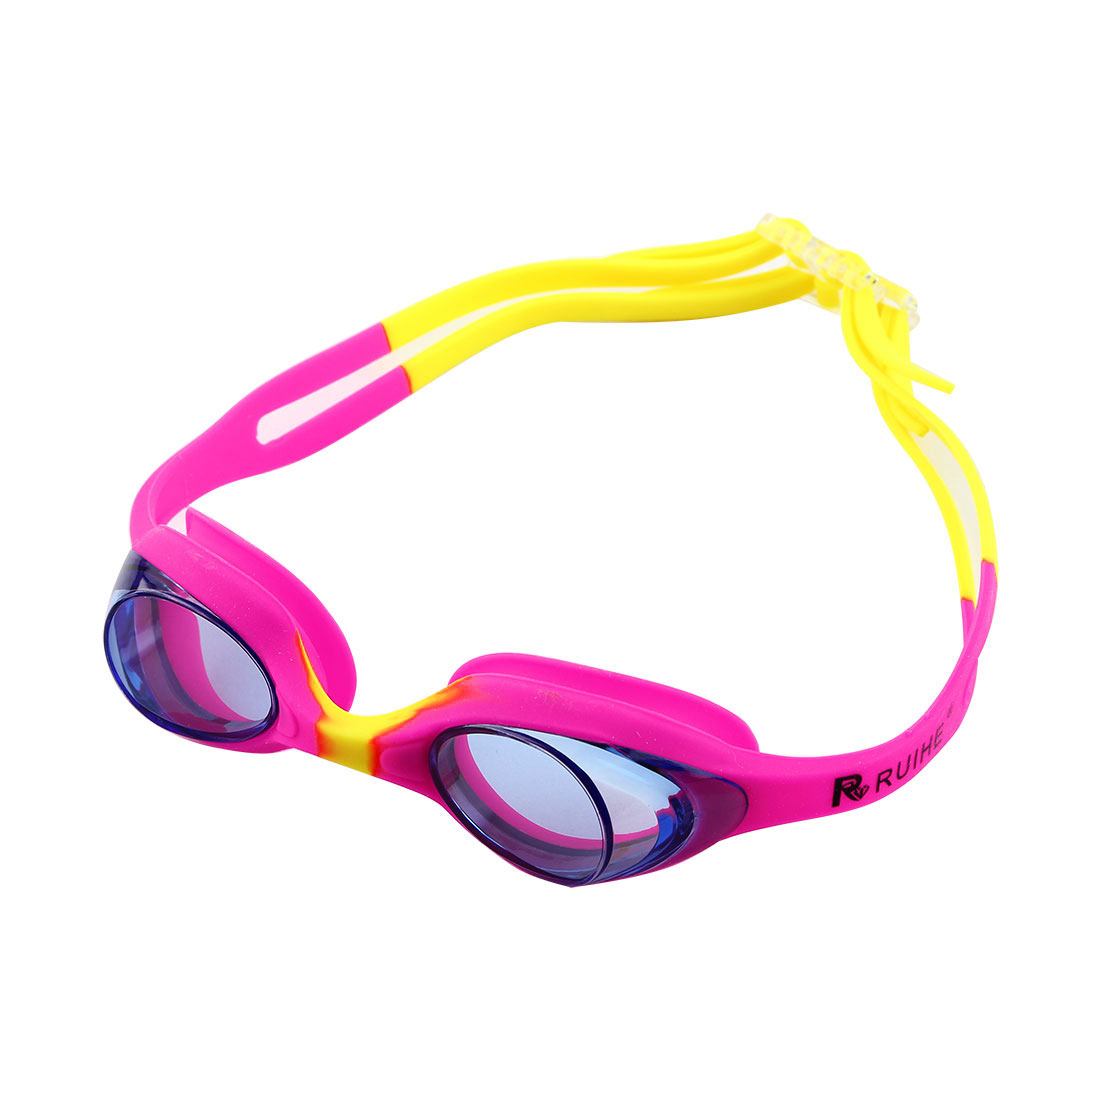 Clear Vision Anti Fog Swimming Goggles Glasses Pink Yellow for Youth